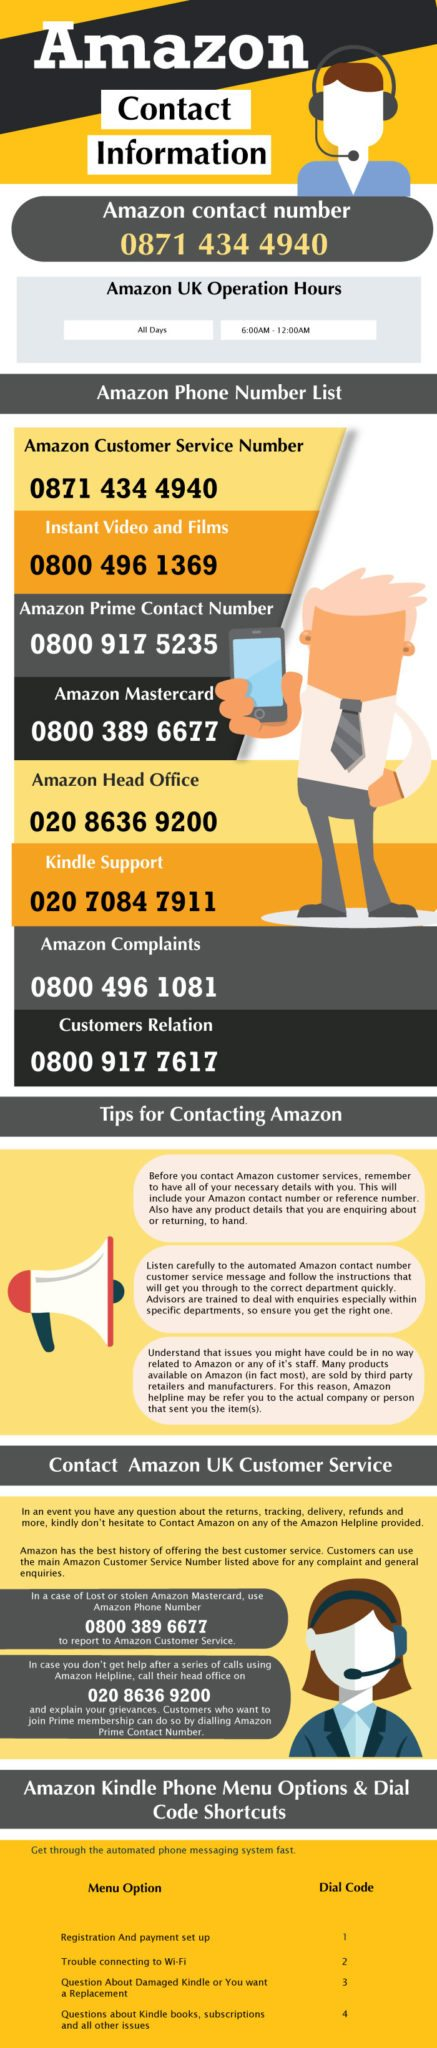 Amazon Helpline